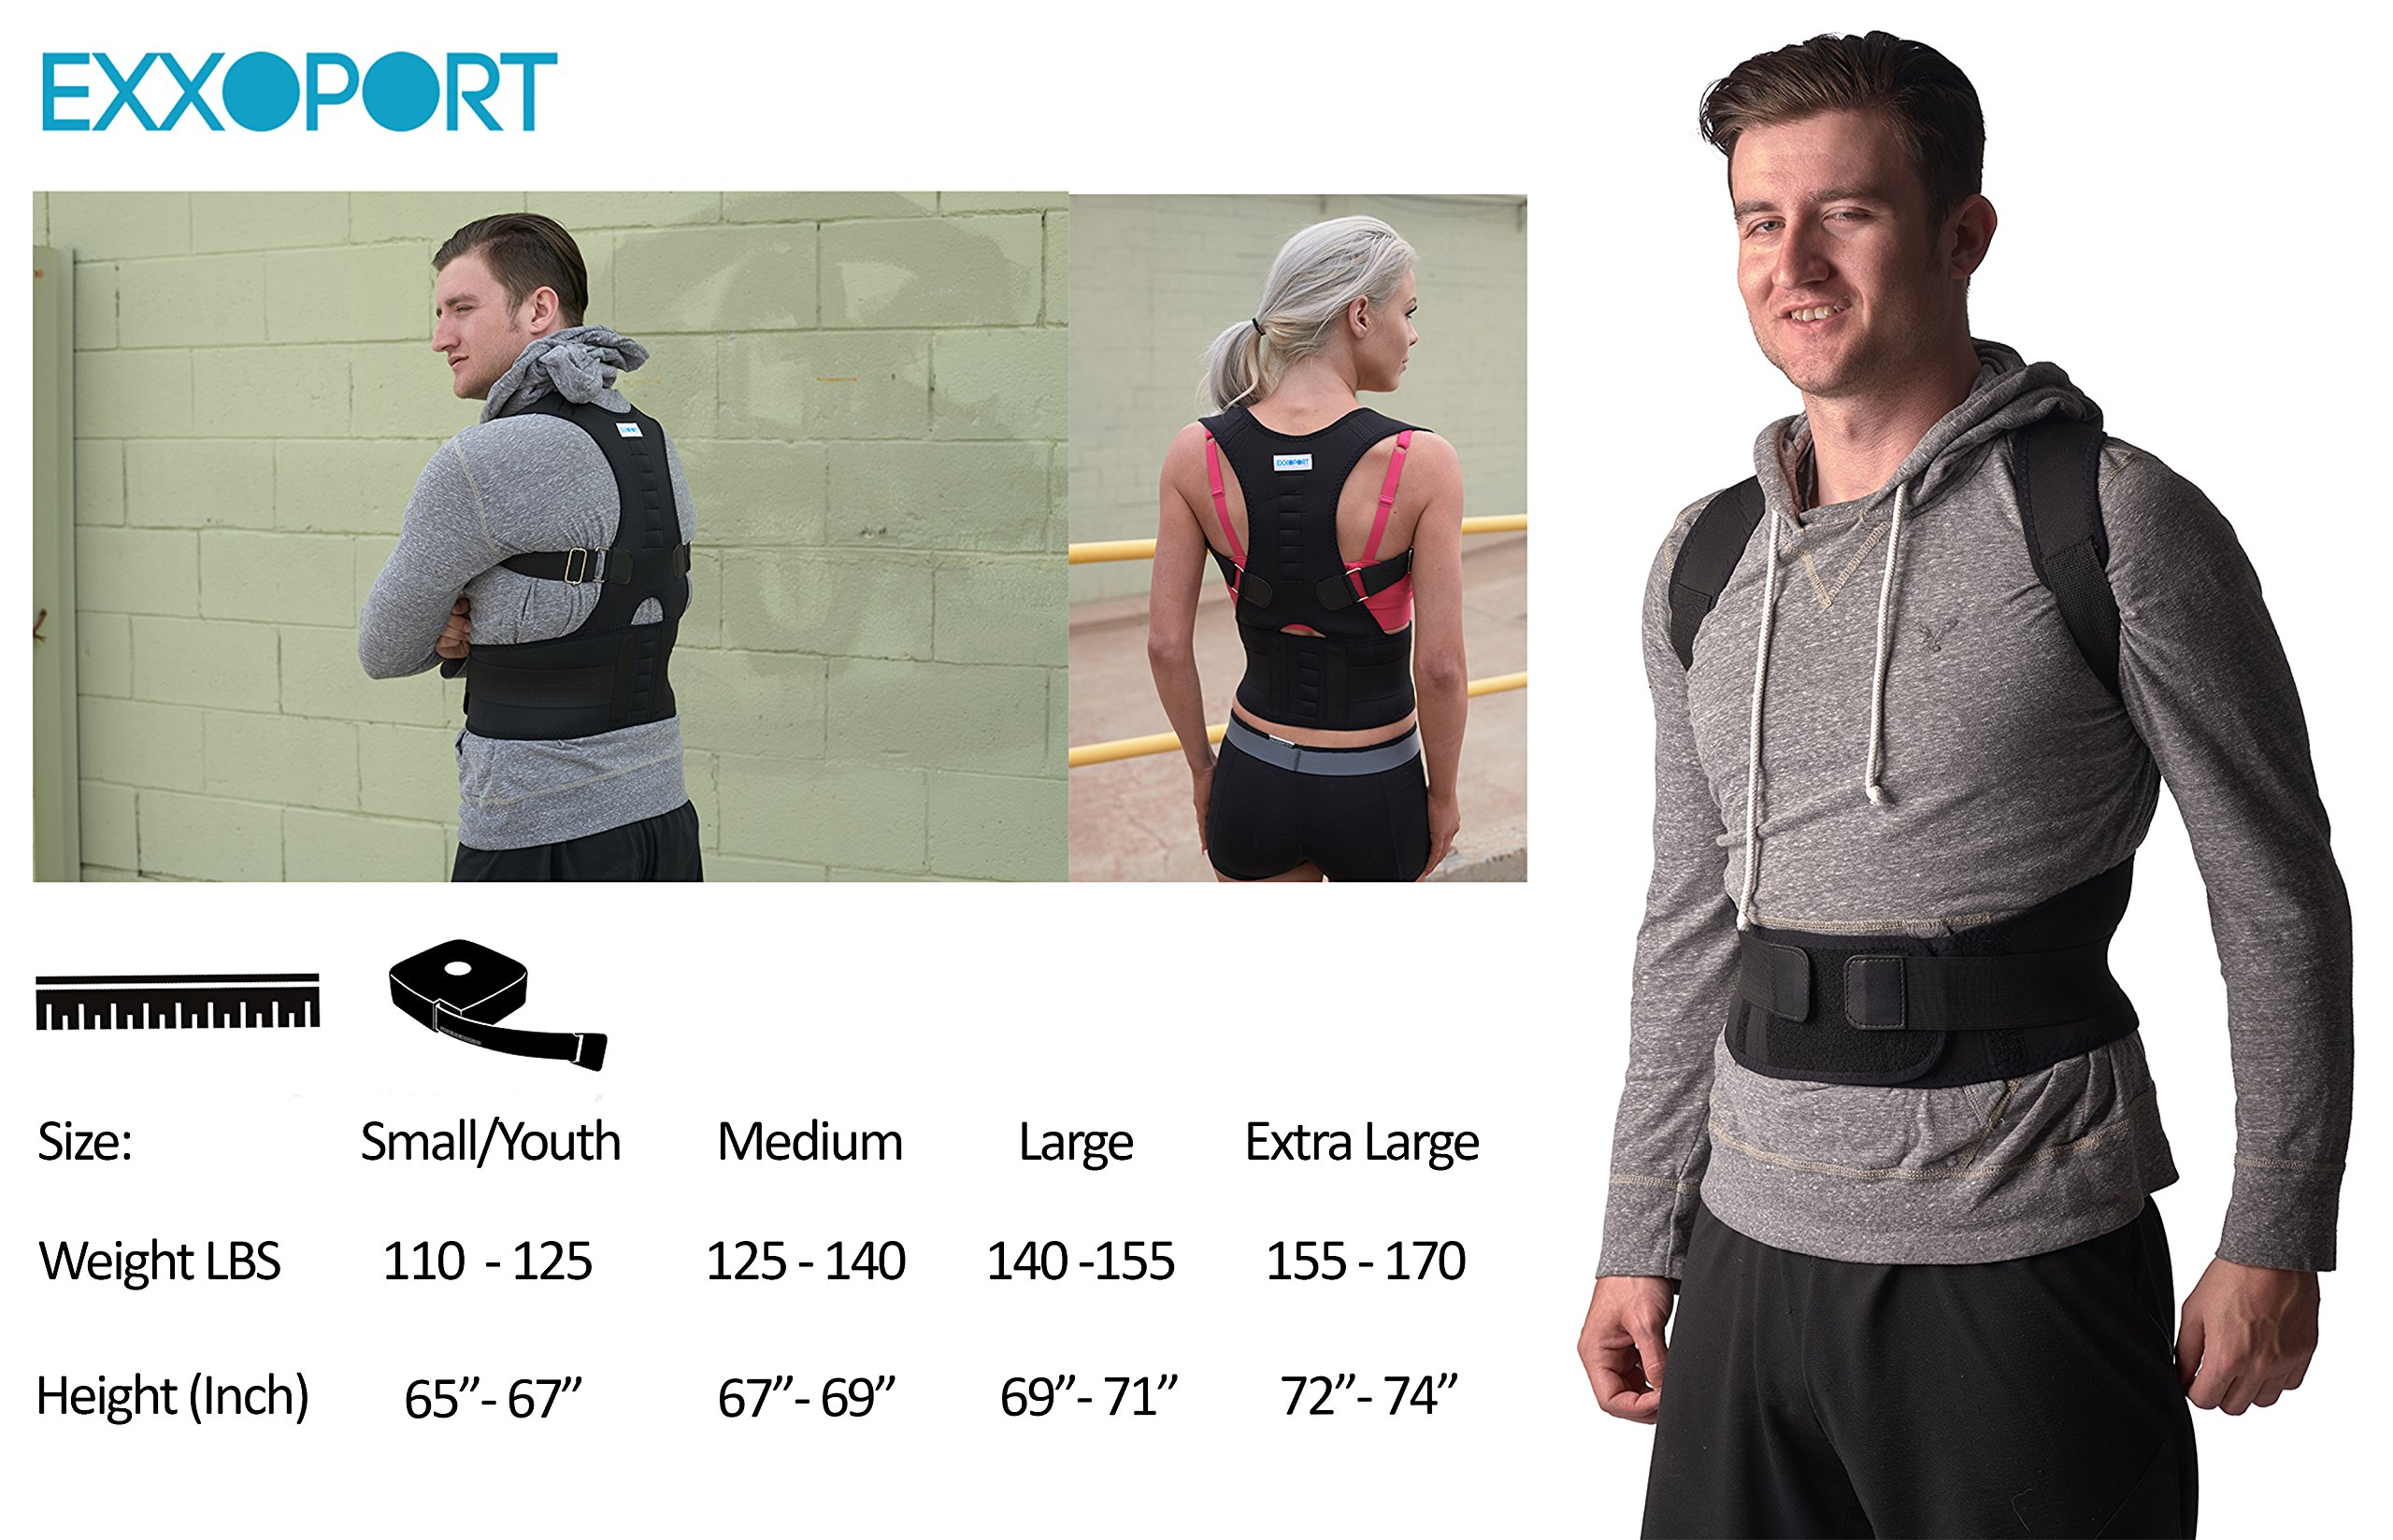 Back Brace Posture Corrector I for Youth, Men and Woman I Reduce Upper and Lower Back Pain I Stabilize Spine I Adjustable Straps (Medium (125-140lbs)) by EXXOPORT (Image #4)